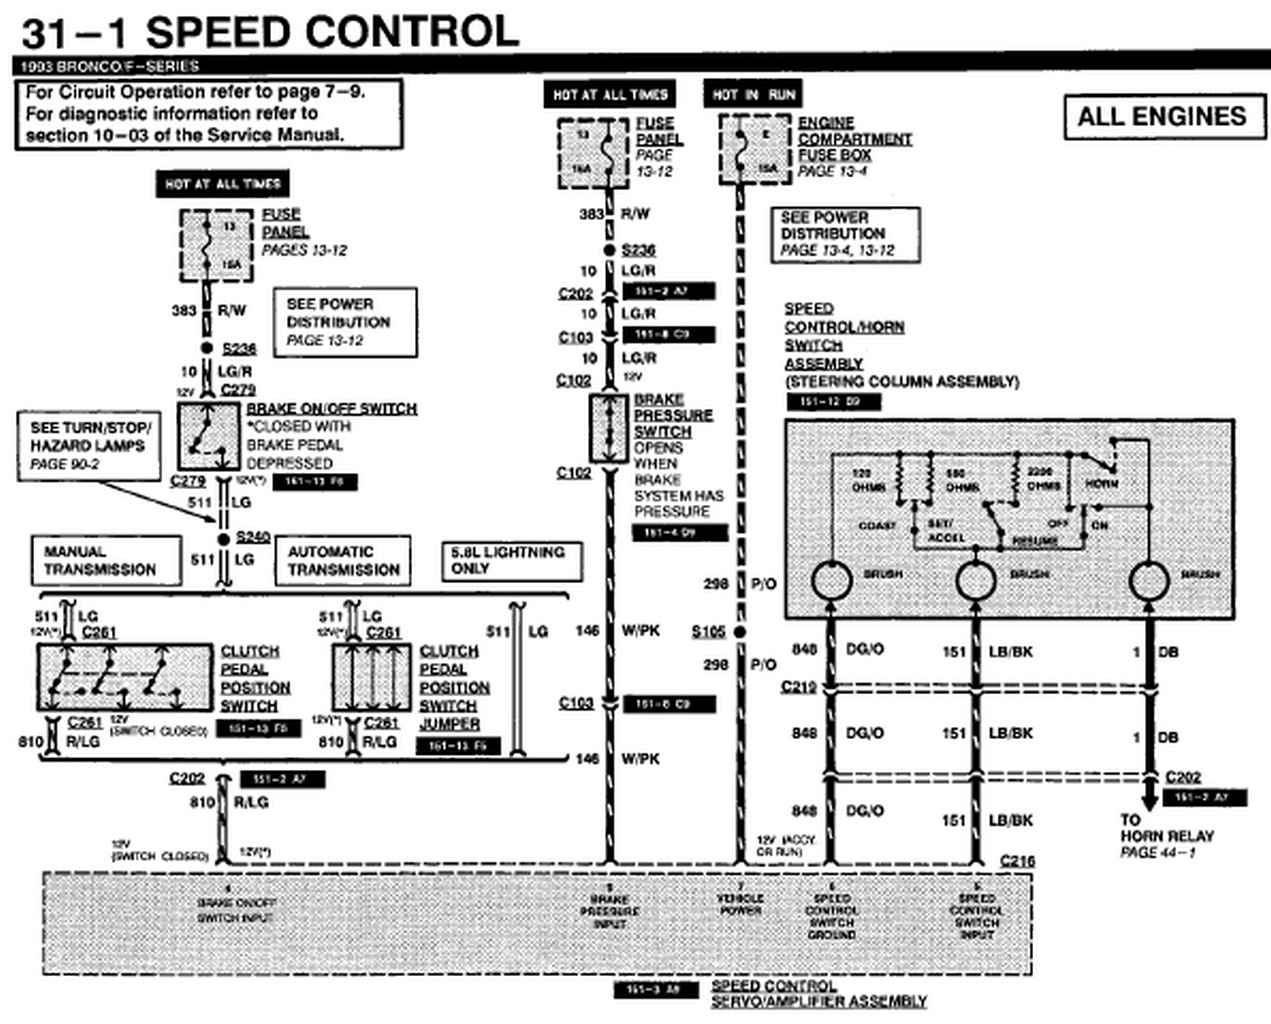 2011 03 28_215523_93_f 150_speed_control_wiring_diagram wiring diagram for 1995 ford f150 ireleast readingrat net ford cruise control wiring diagram at gsmx.co